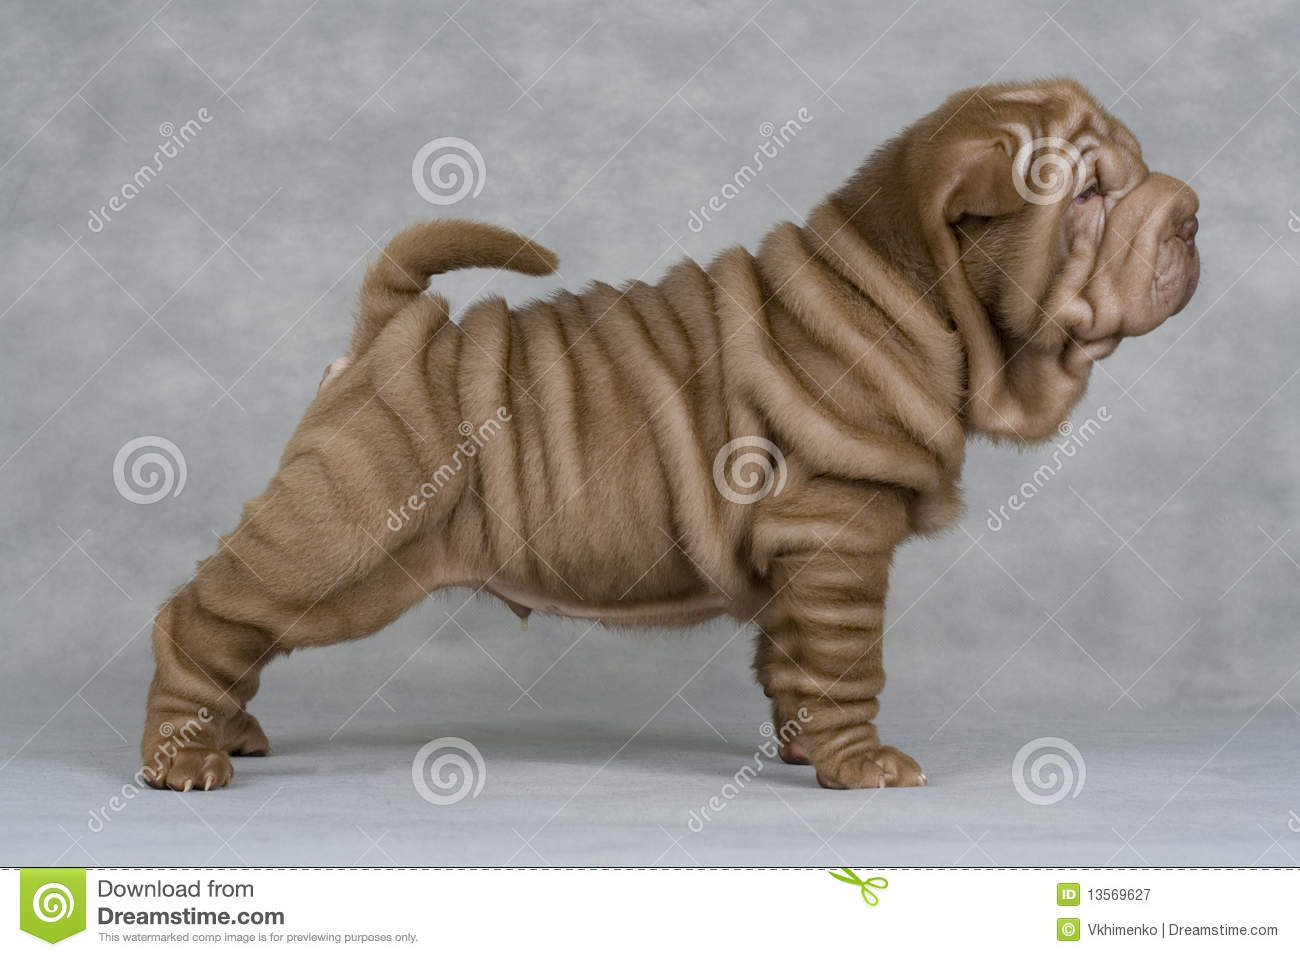 Shar-pei Royalty Free Stock Photography - Image: 13569627